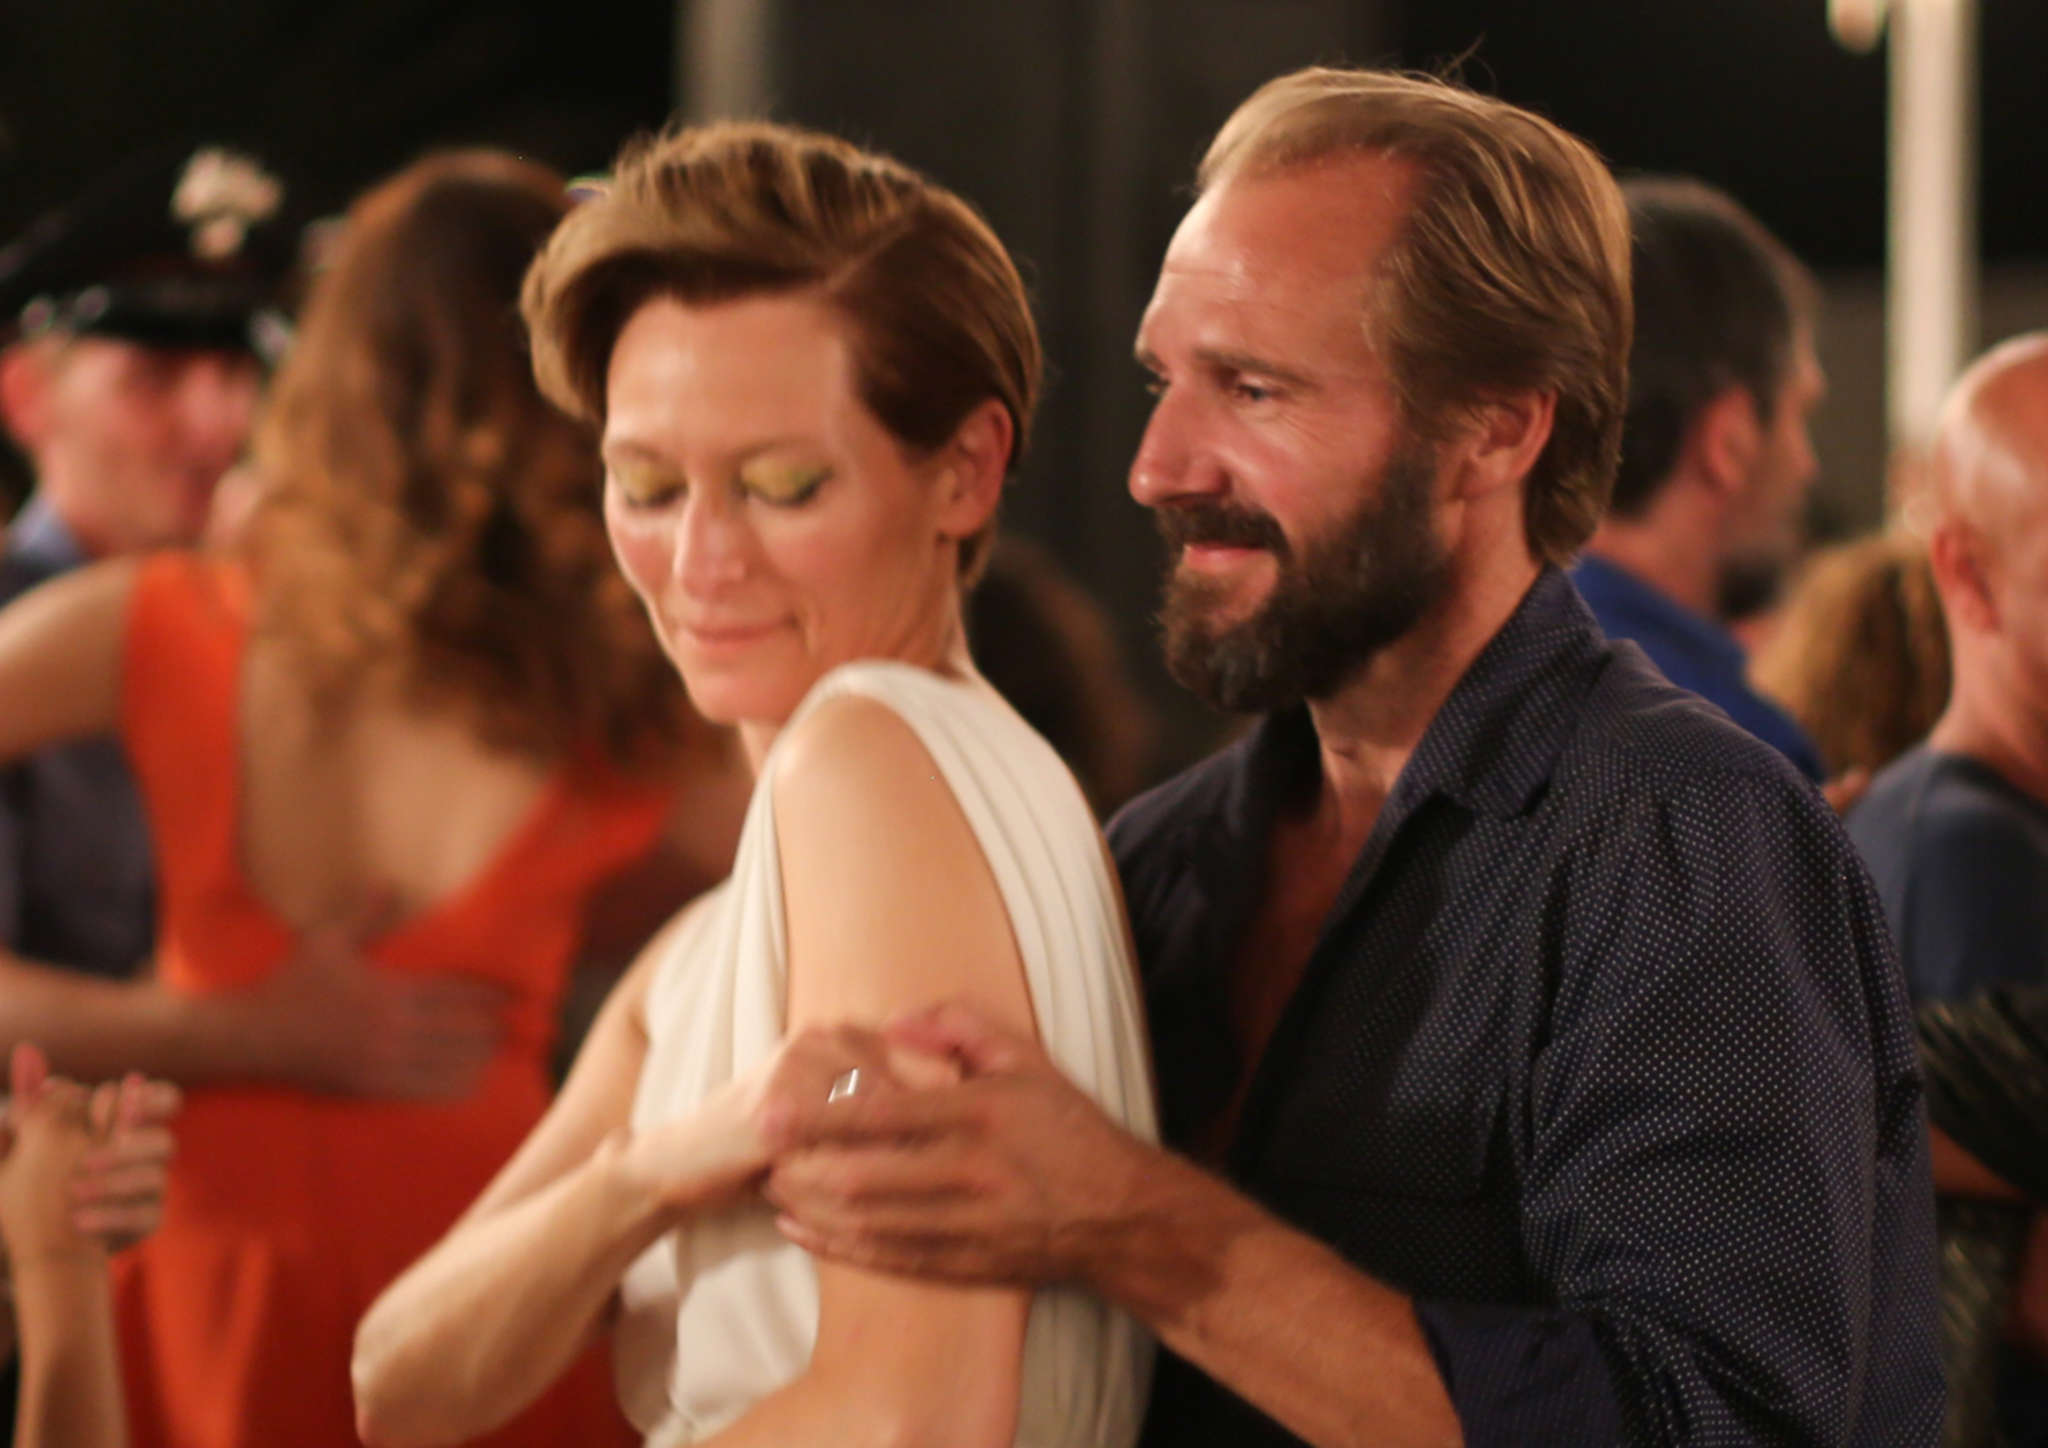 """A Bigger Splash"" stars Tilda Swinton and Ralph Fiennes."